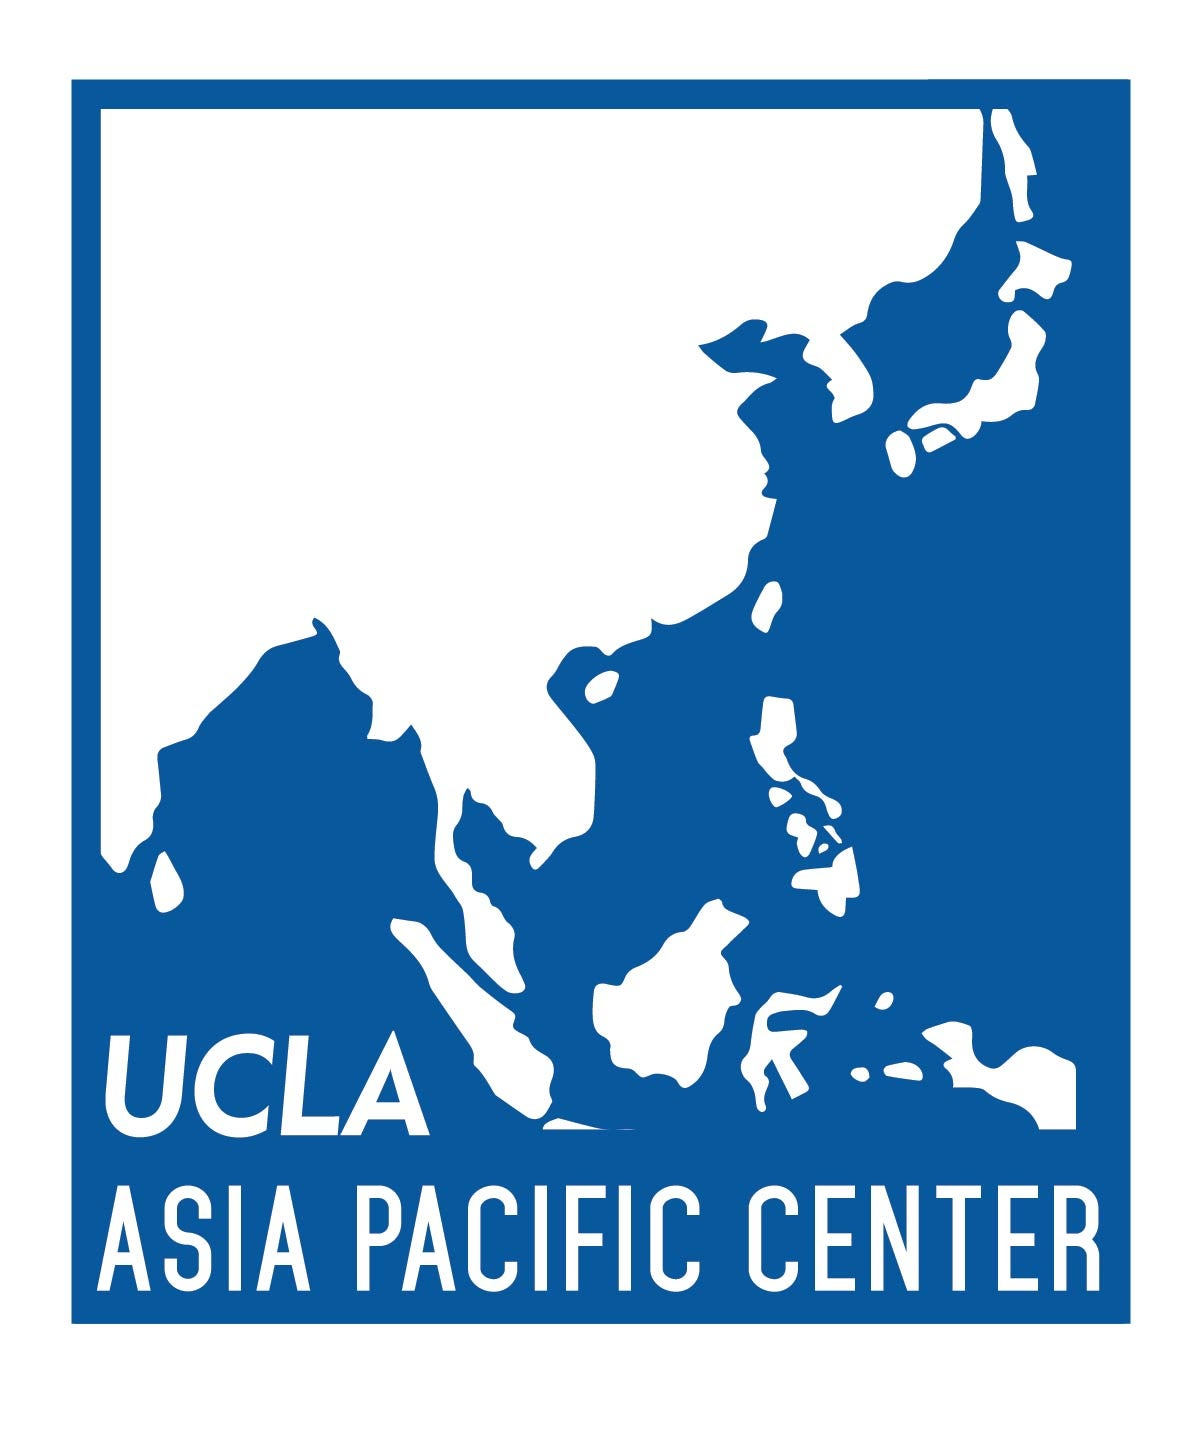 UCLA Asian Pacific Center